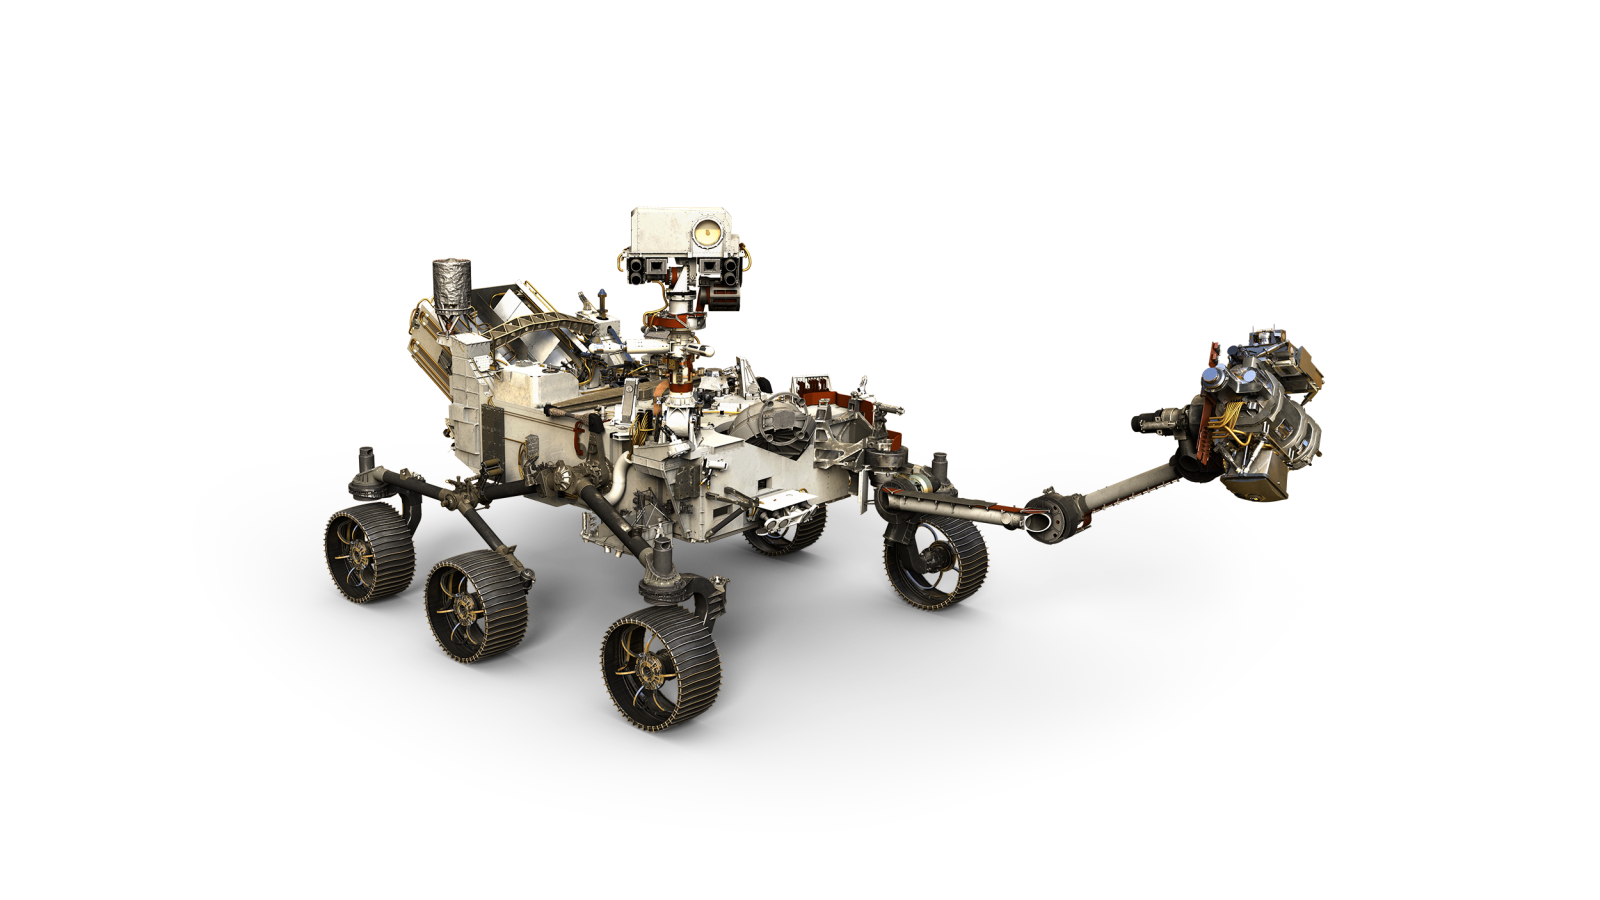 Caltech Calendar 2020 Mars 2020 spacecraft tested for flight, rover gets cameras